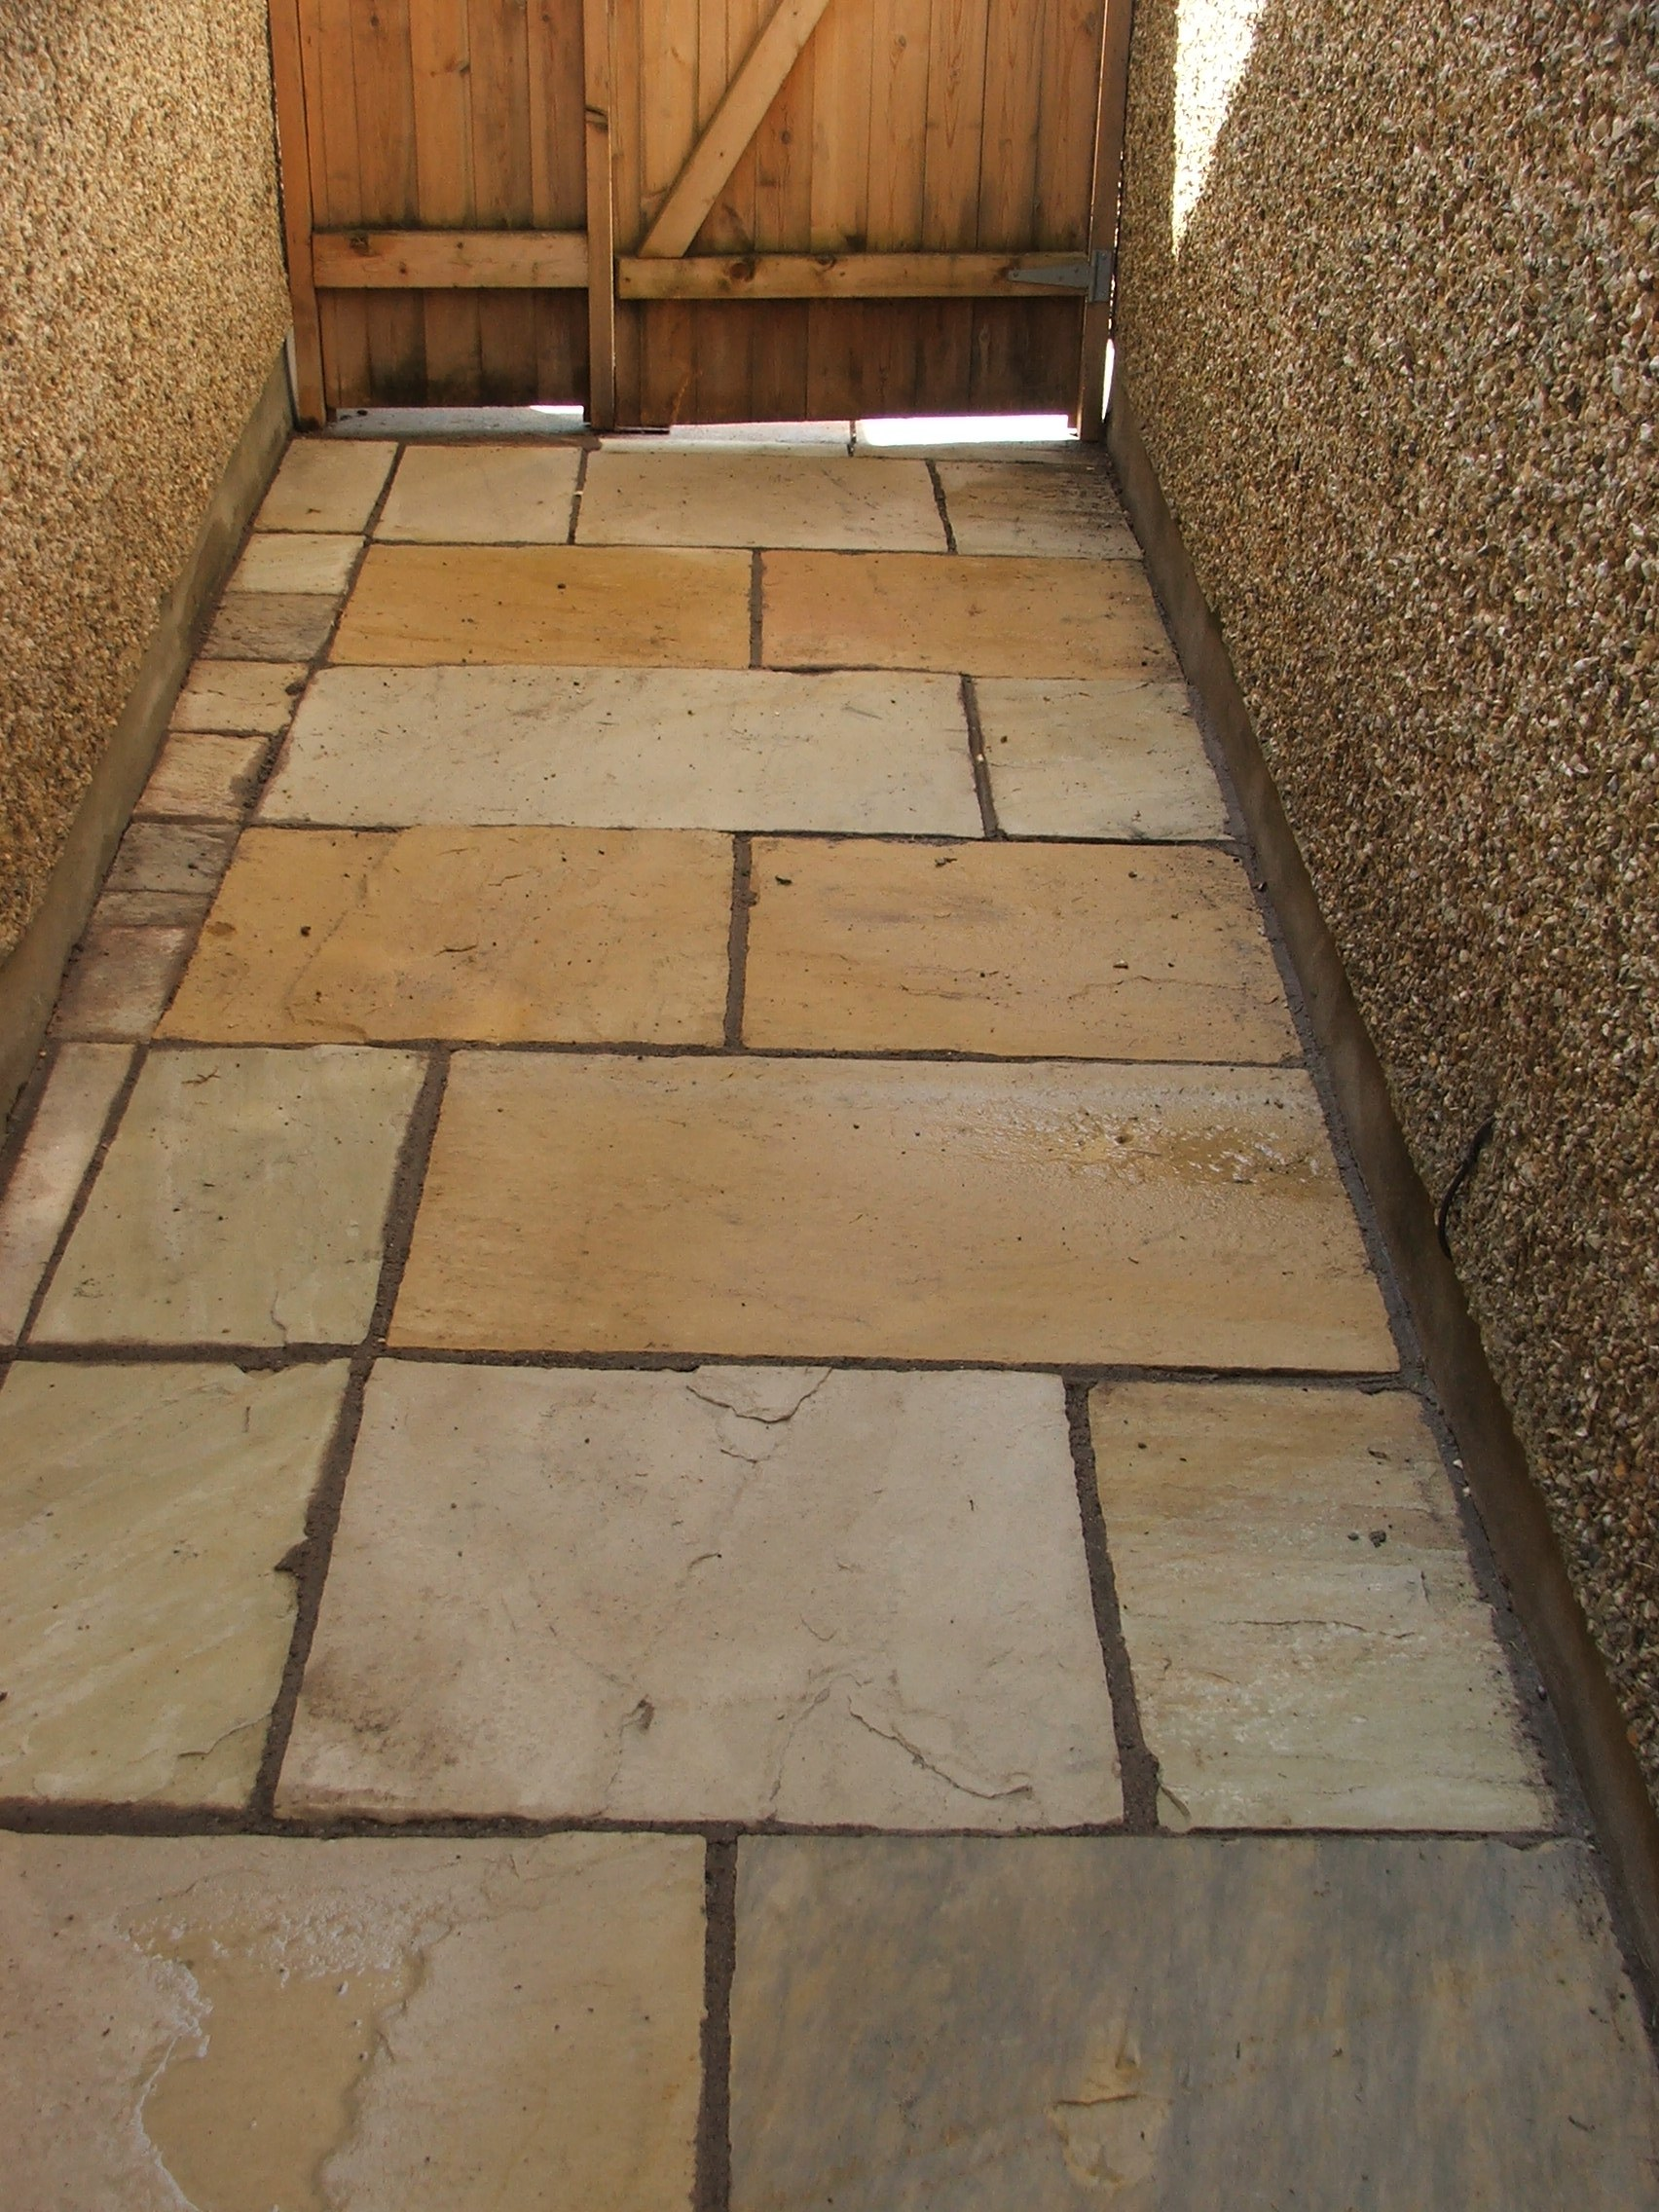 Indian sandstone cleaned